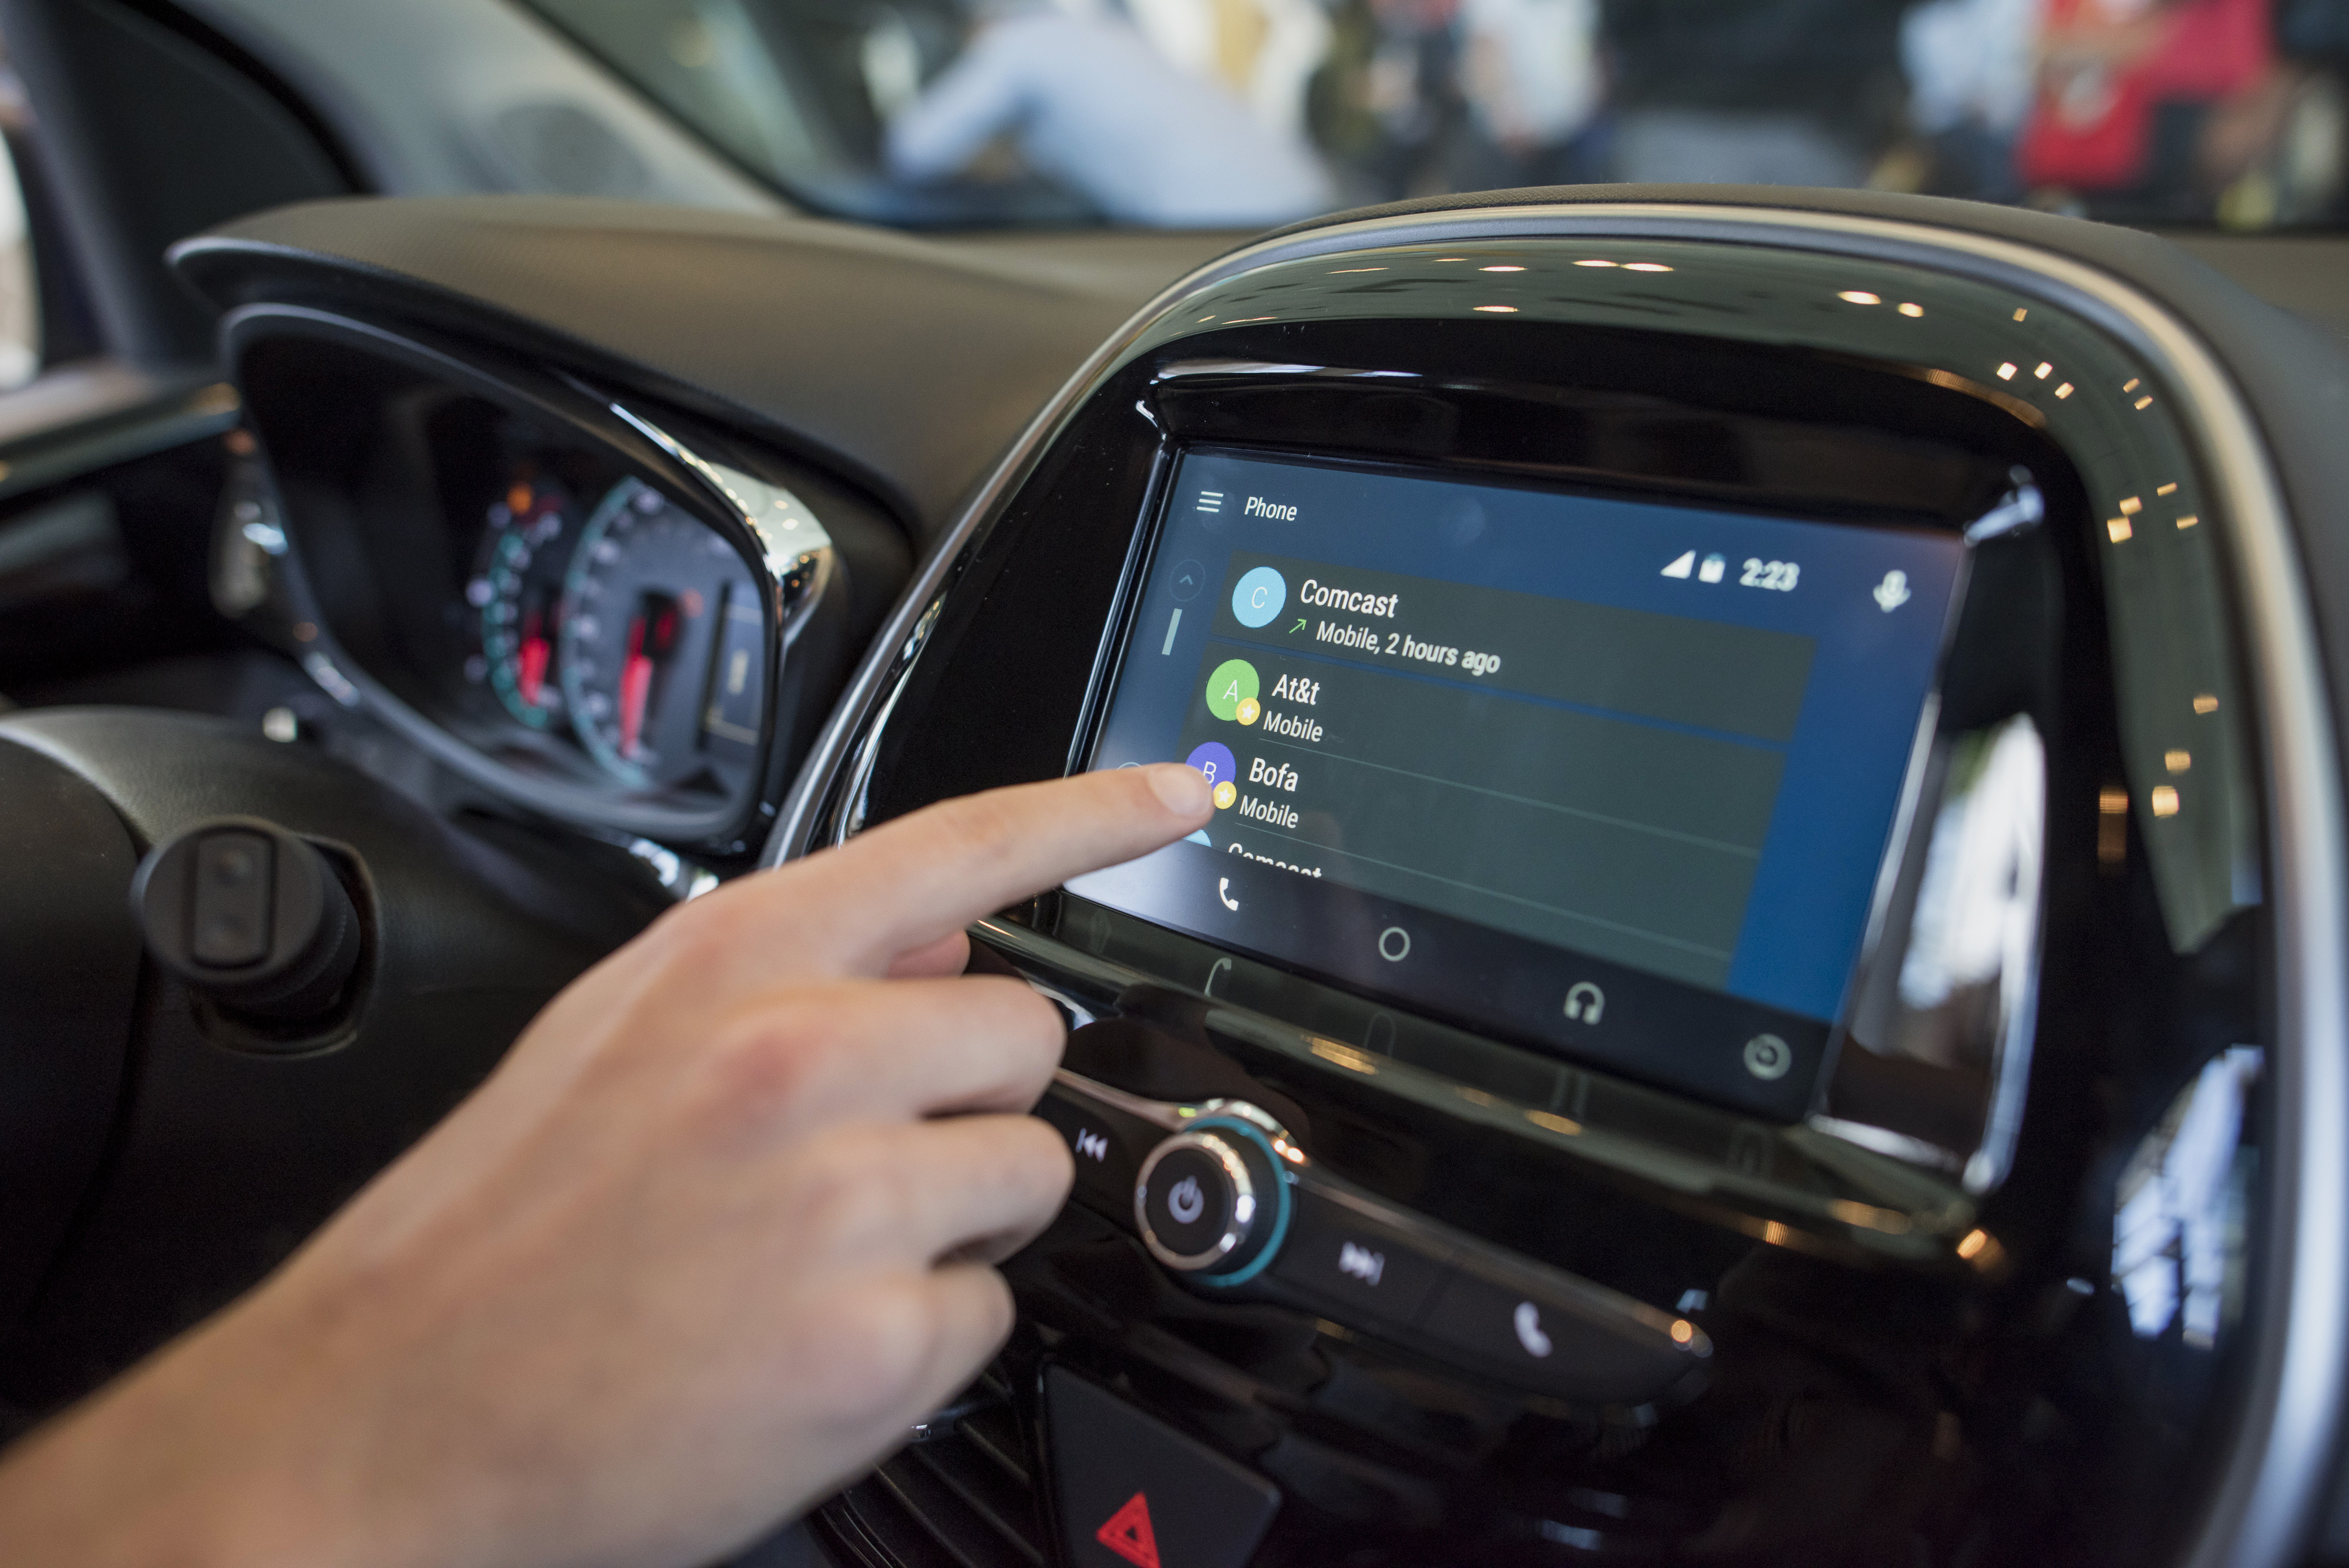 Google showed off Android Auto, a car interface connected to Android phones that helps you stay focused while driving — there are voice controls, integrated wheel controls and directions, among other features. The Hyundai Sonata will be the first car to arrive with Android Auto.